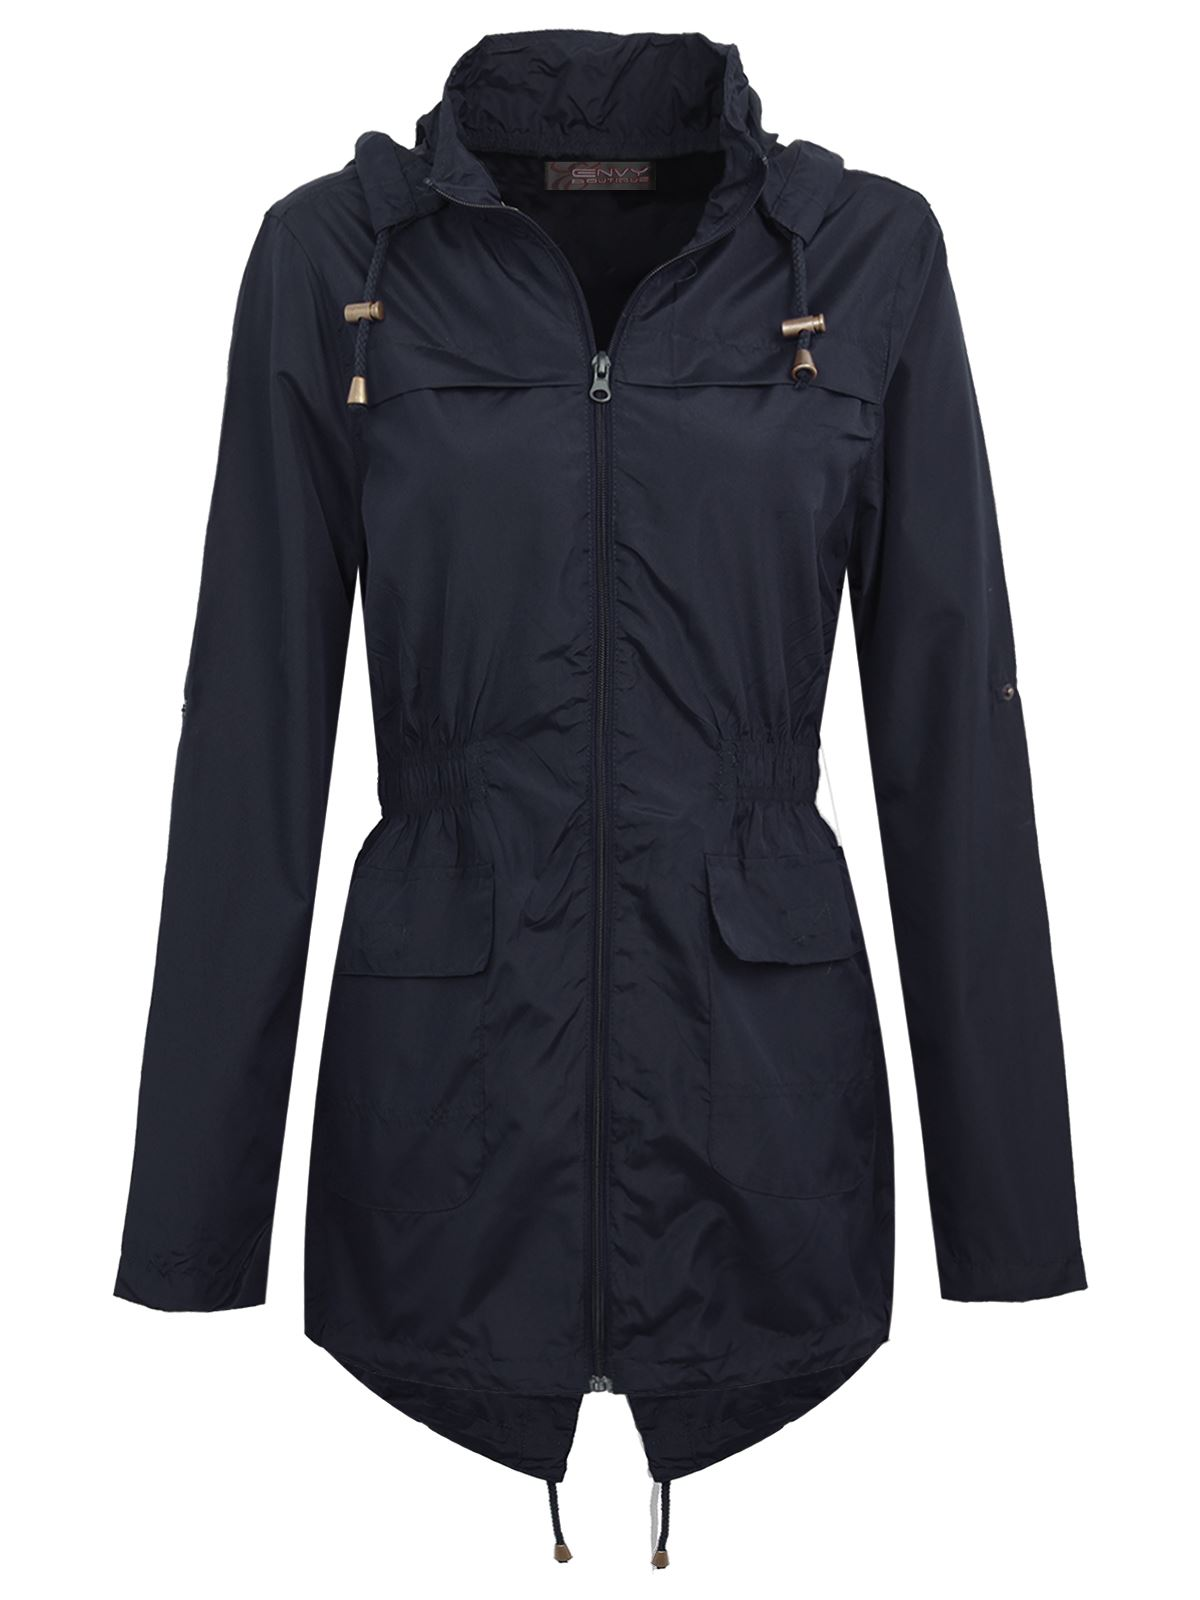 NEW LADIES WOMENS PLAIN PARKA MAC HOODED WATERPROOF RAINCOATS ...